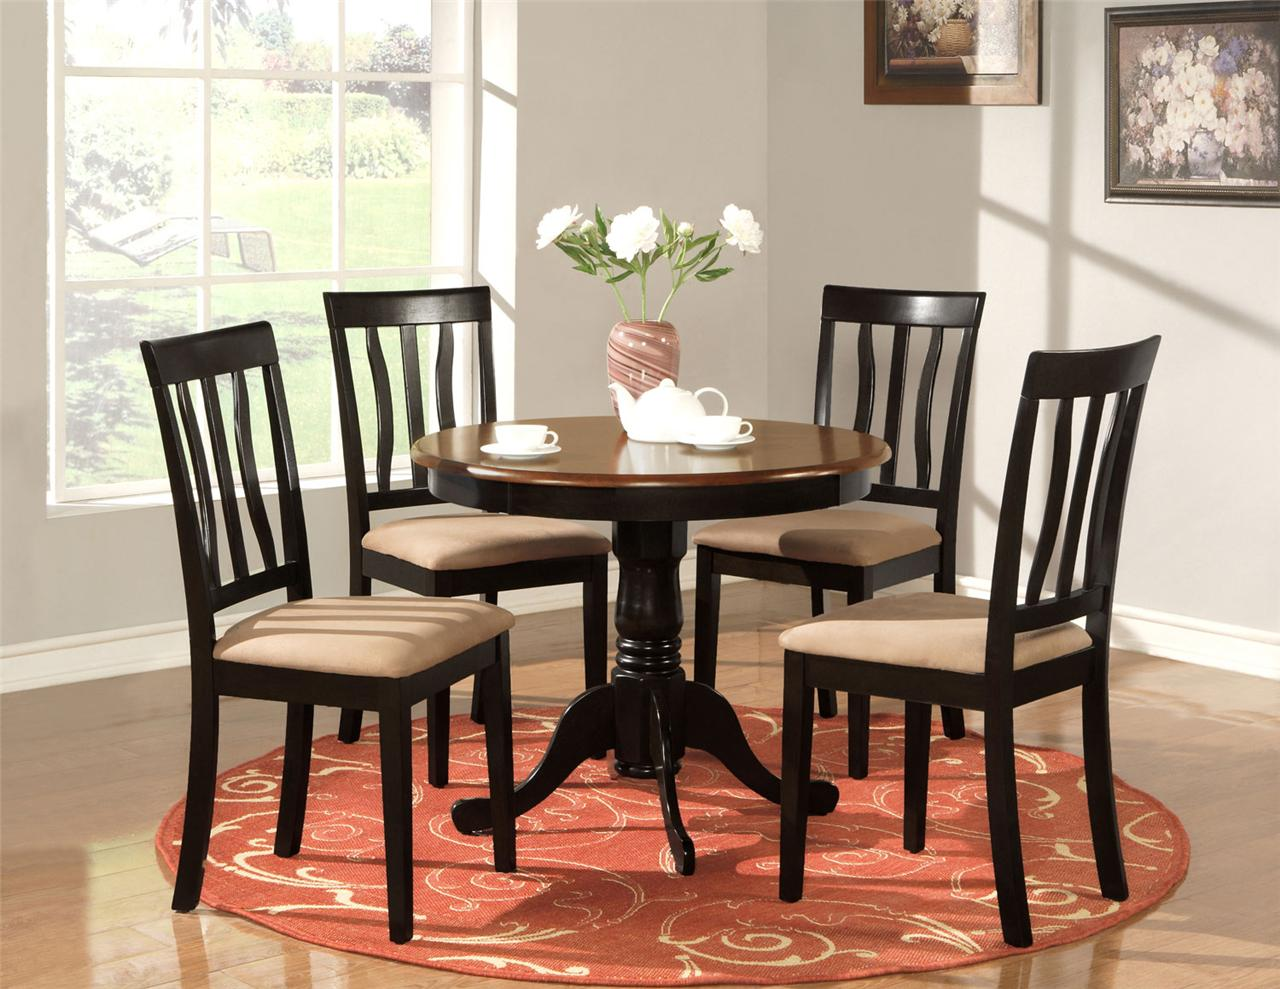 Round kitchen table photo - 3